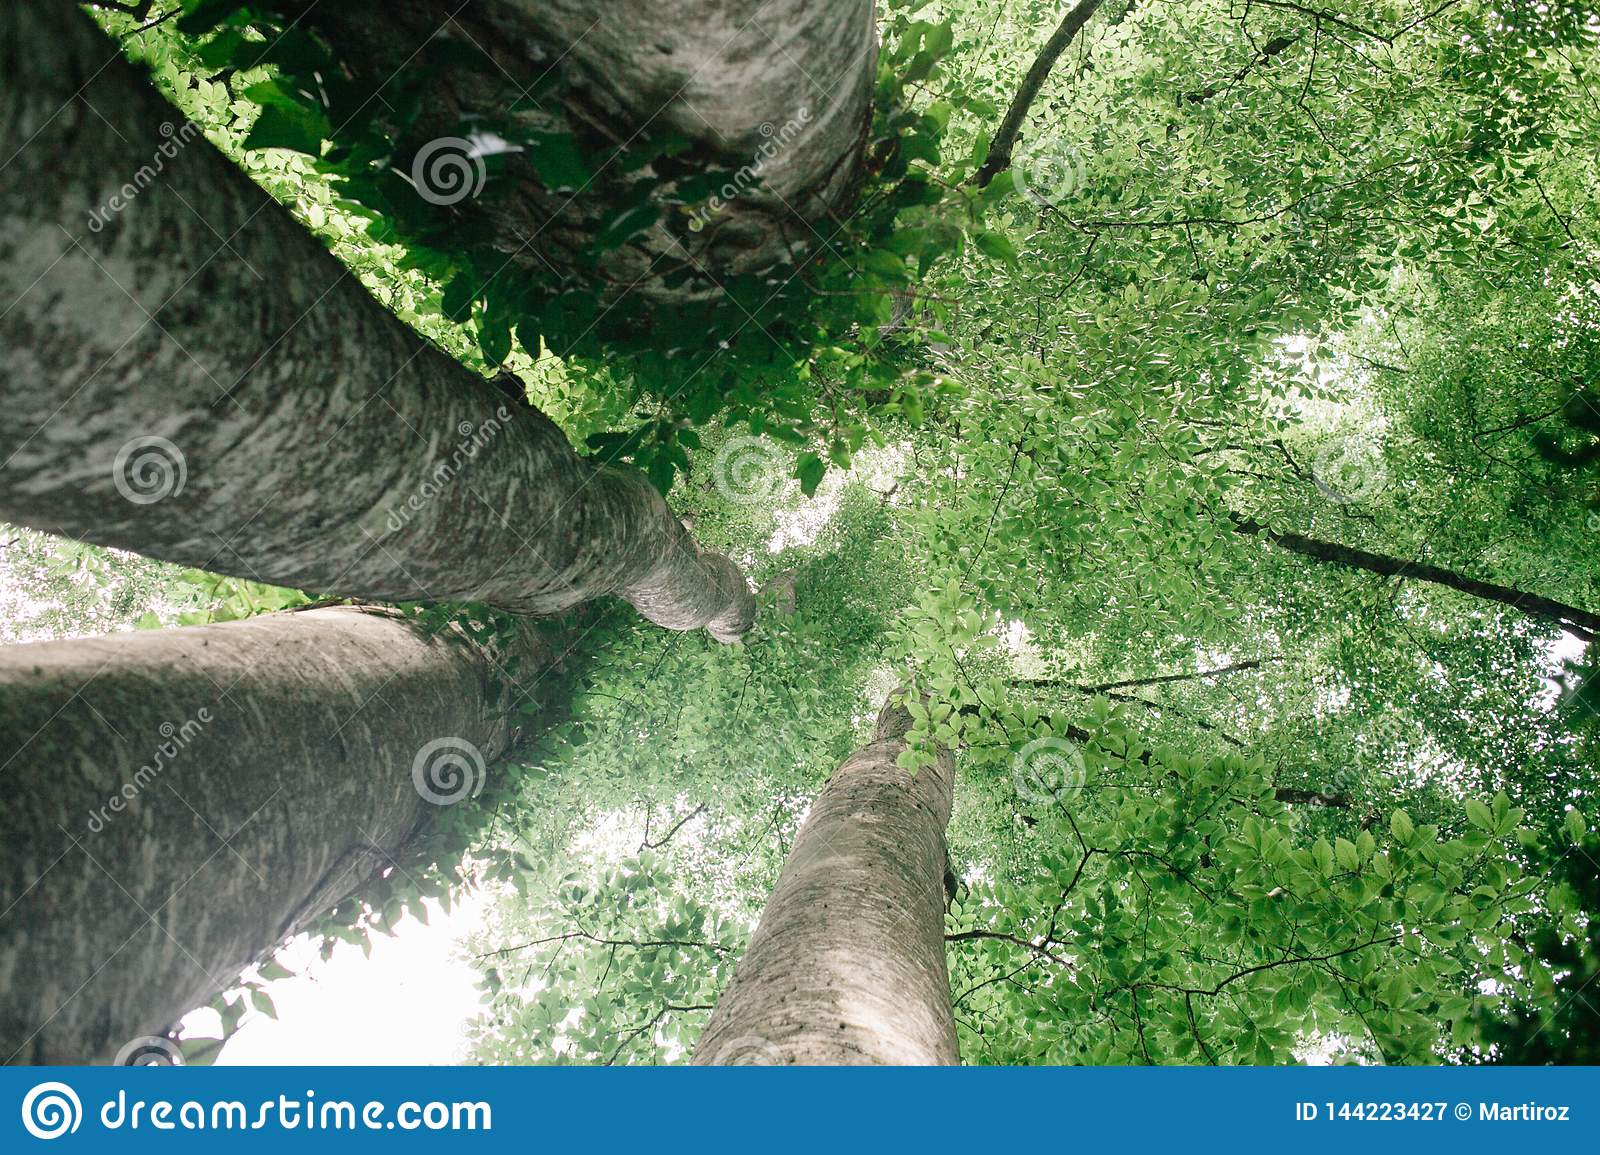 Looking up into Tall Beech Trees in Natural Forest